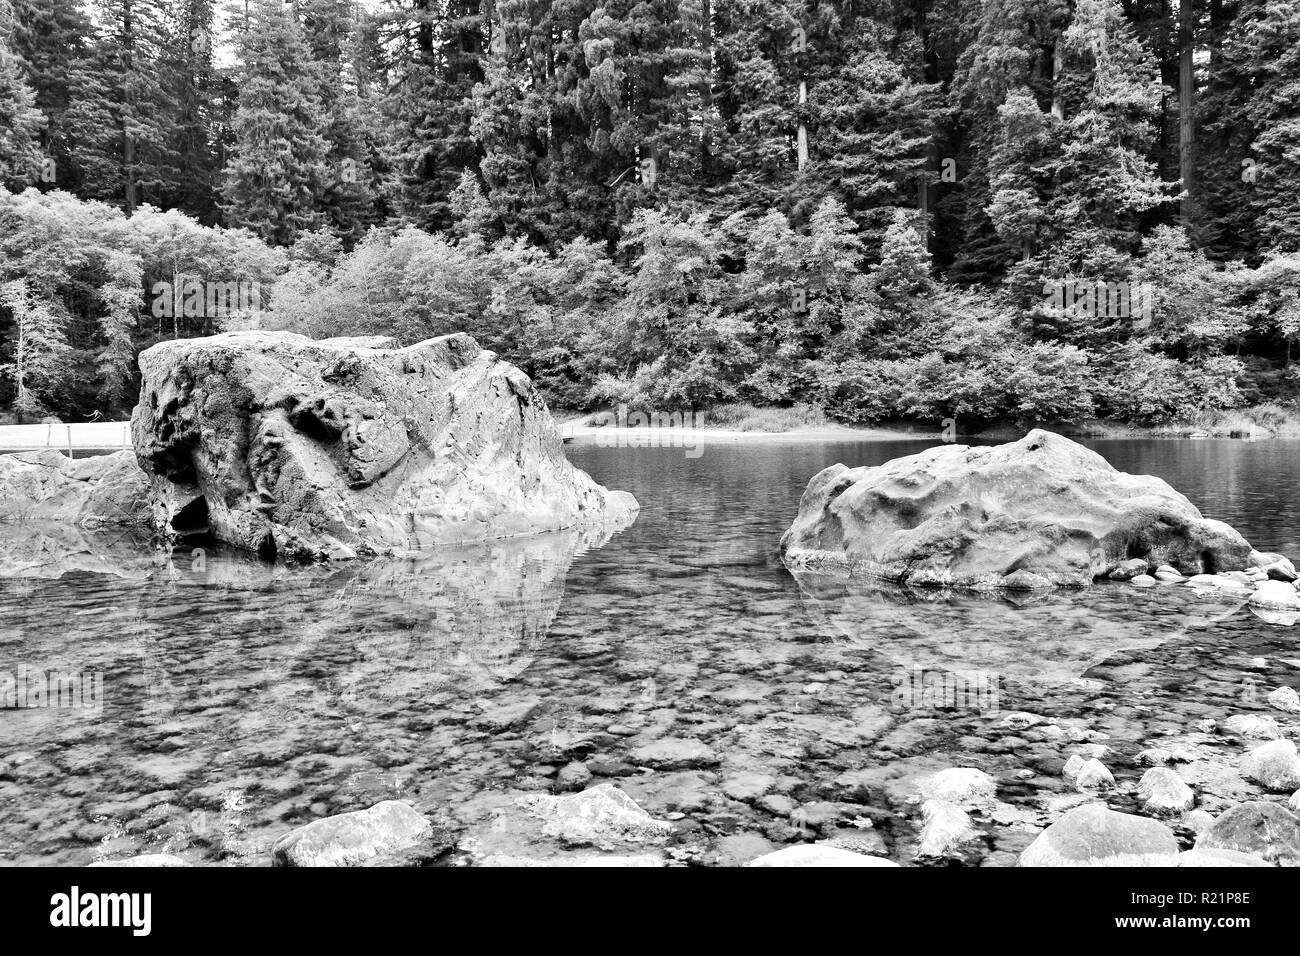 Smith River en Jedediah Smith Redwoods State Park en blanco y negro Foto de stock